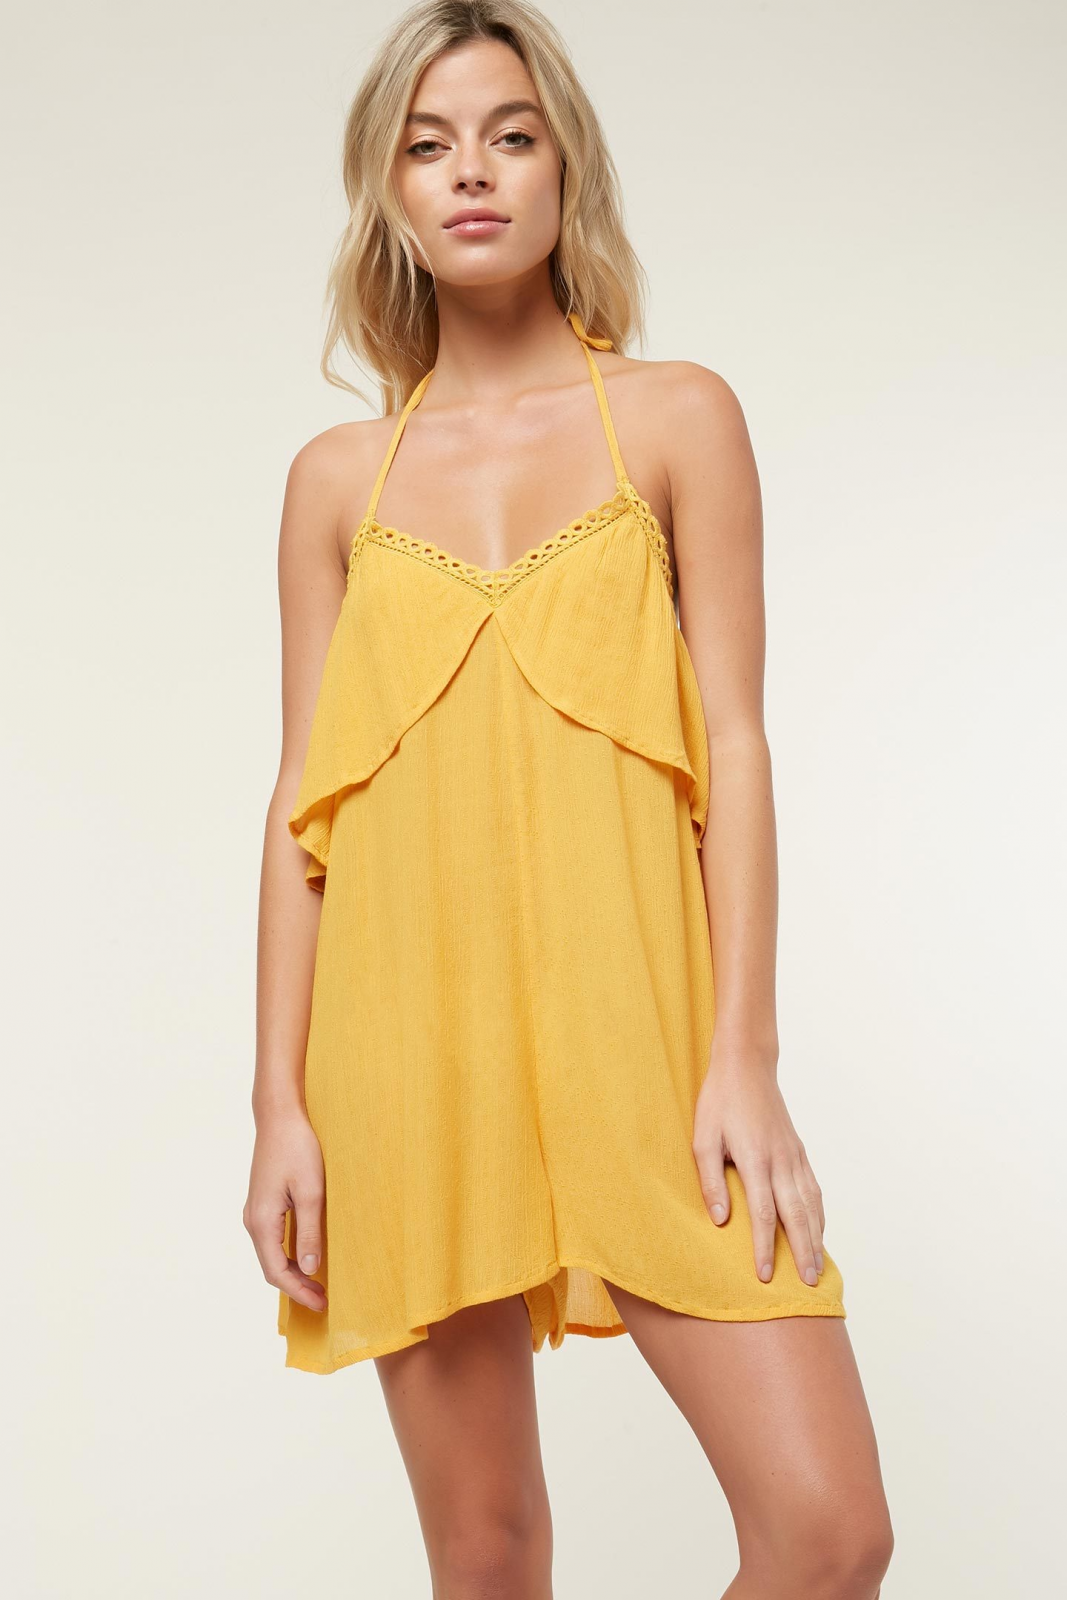 ONEILL BANKS ROMPER COVER-UP